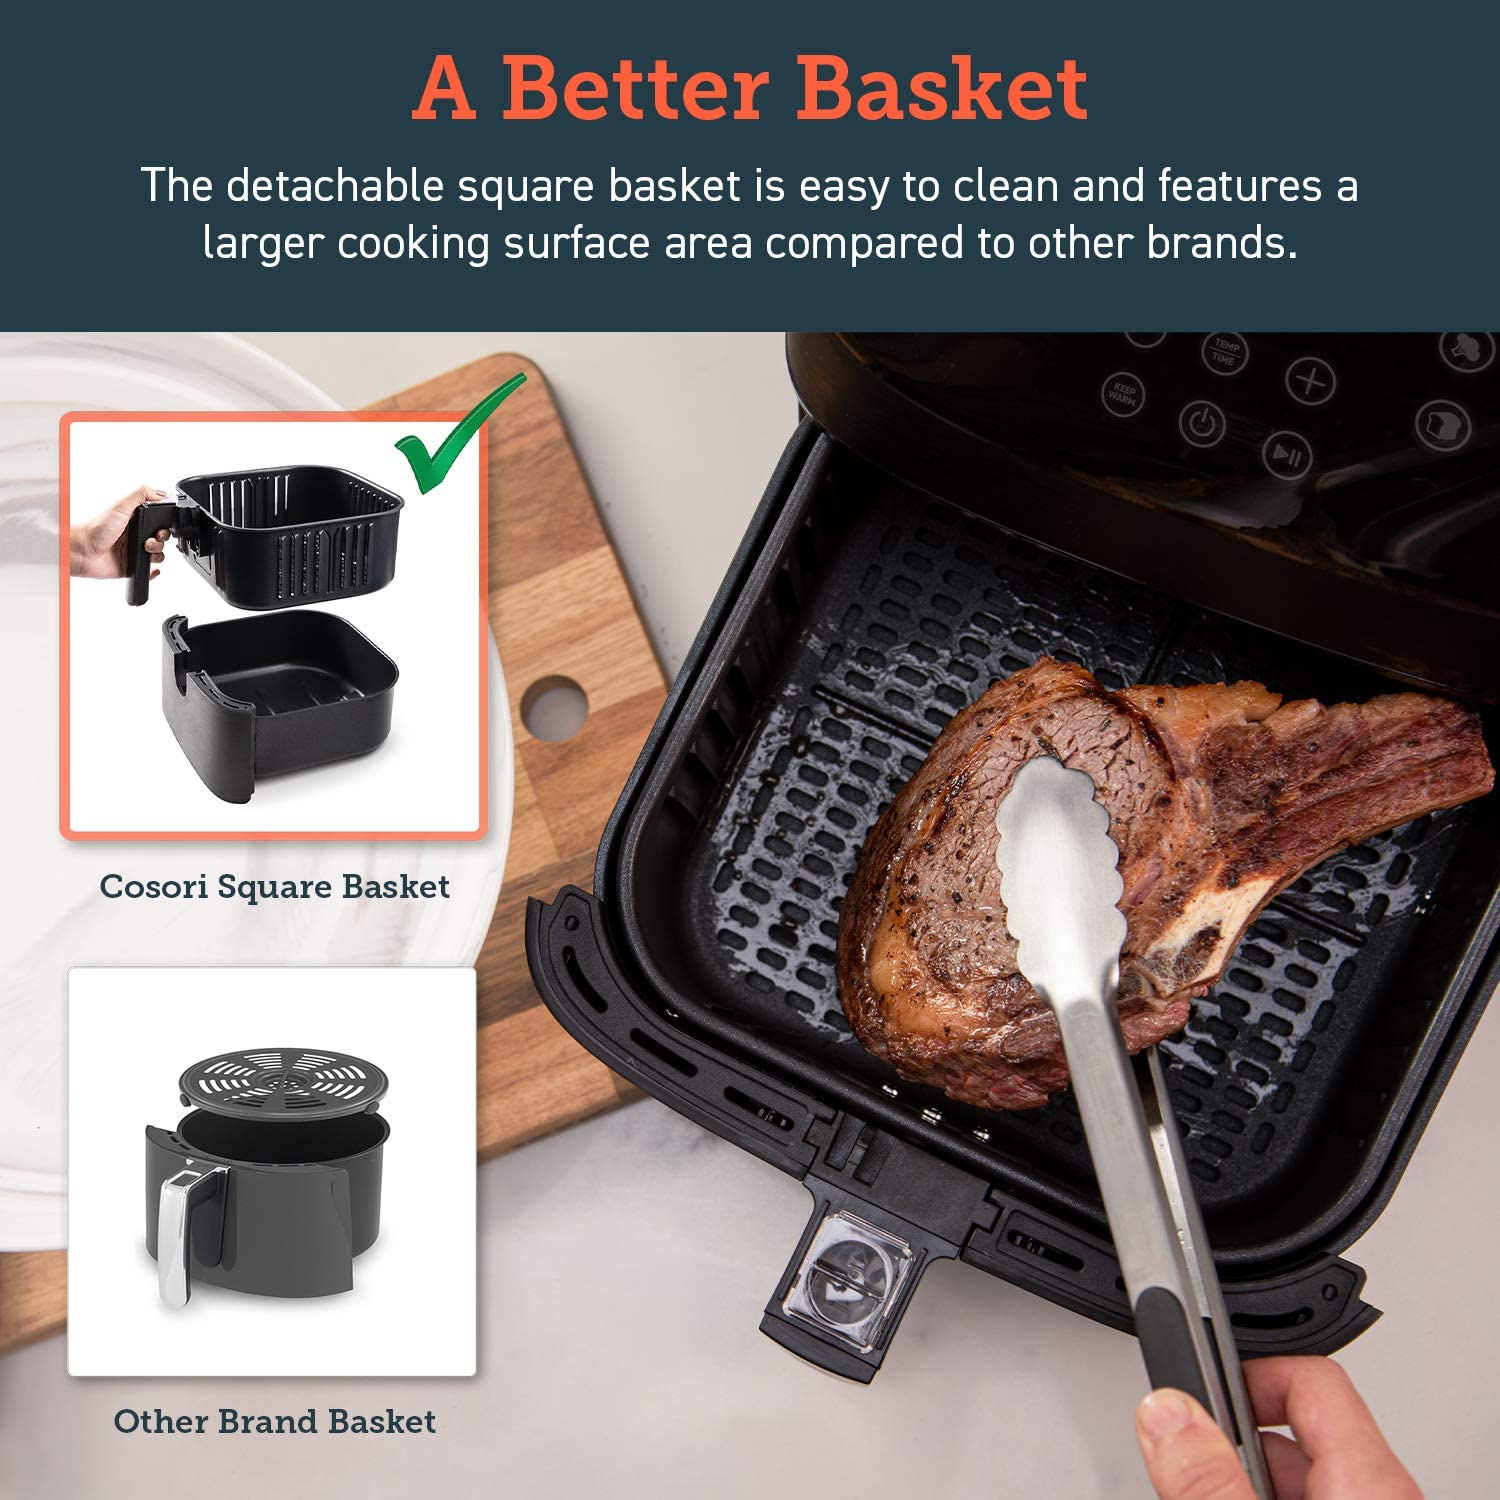 COSORI 5.8QT Electric Hot Air Fryers Oven - A better basket